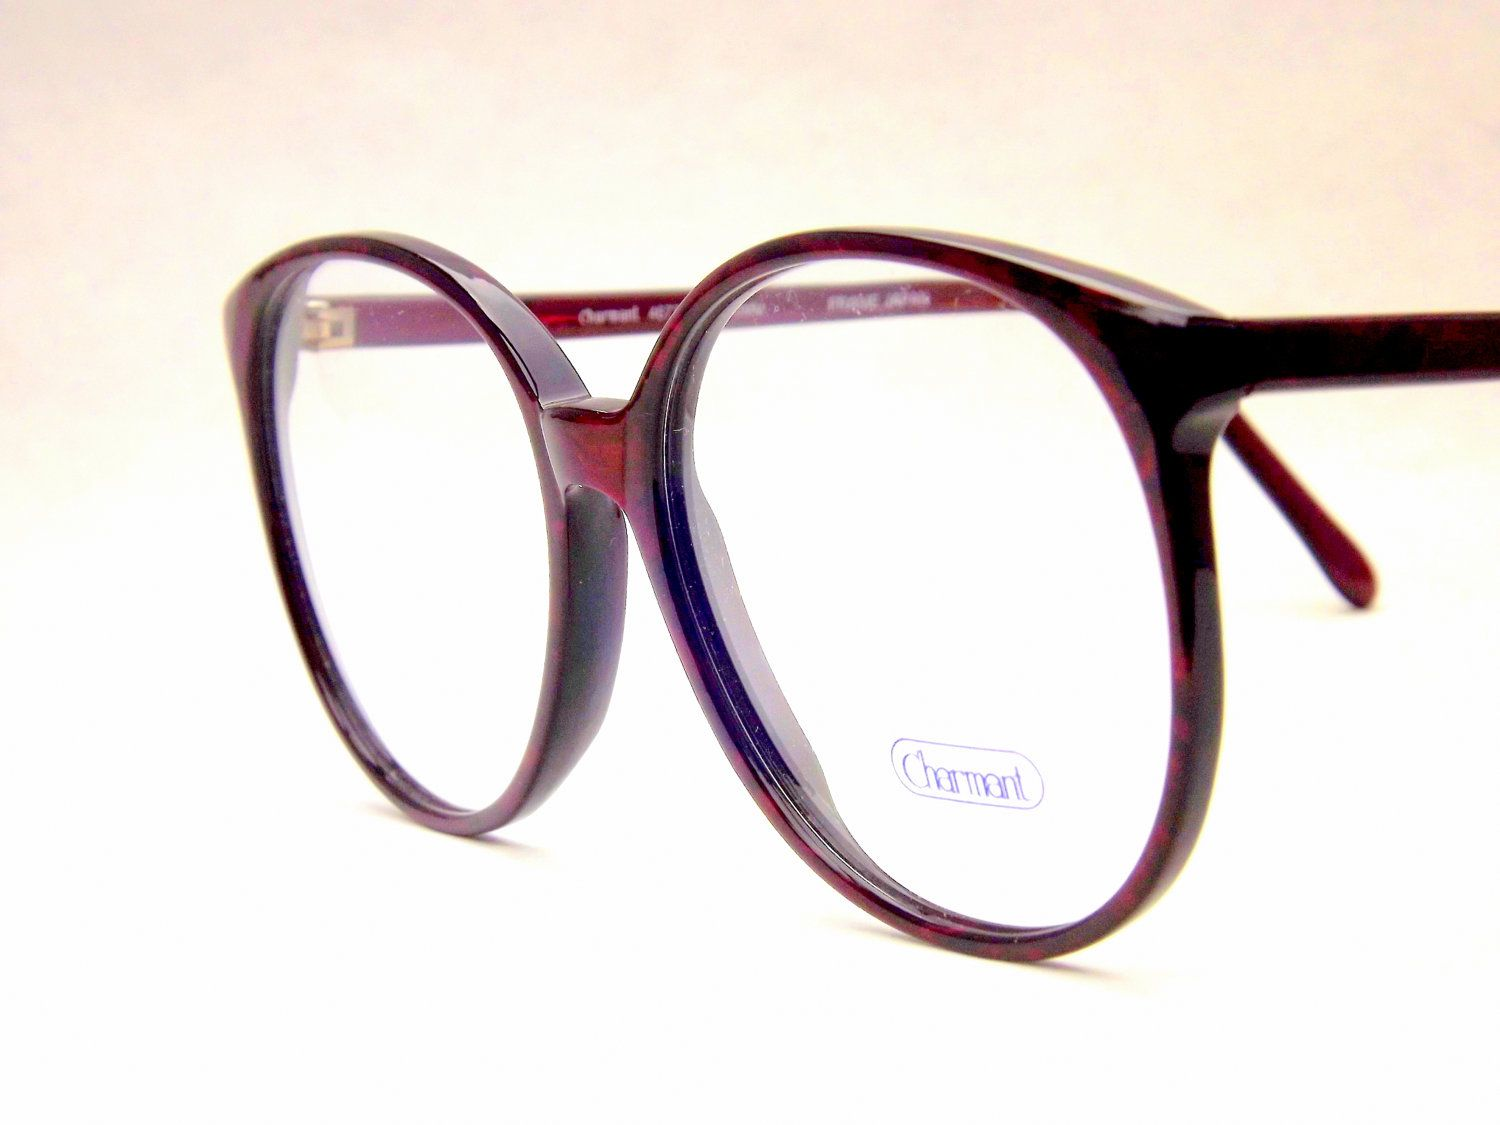 584d17d4ed Big Preppy Burgundy Wine Eyeglasses - Vintage Eyewear - Womens Round 80s  Vintage New Old Stock Frames.